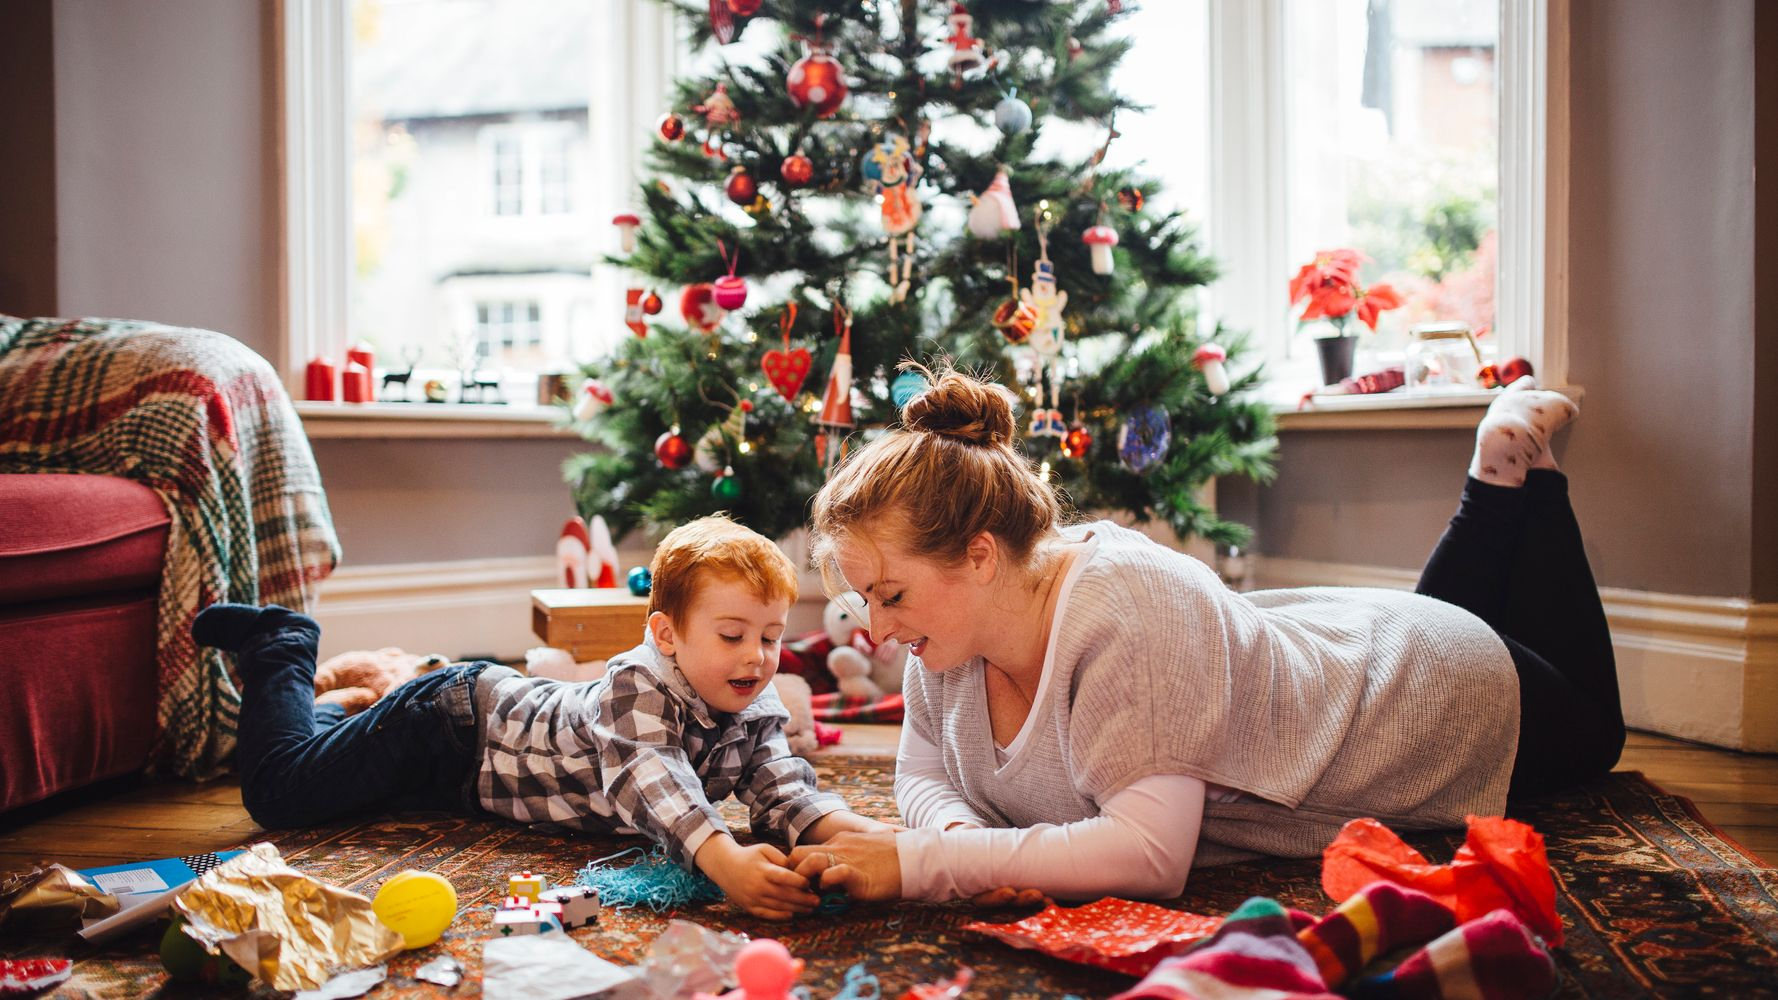 Things To Do On Christmas Eve.10 Things You Can Do With Your Kids On Christmas Eve